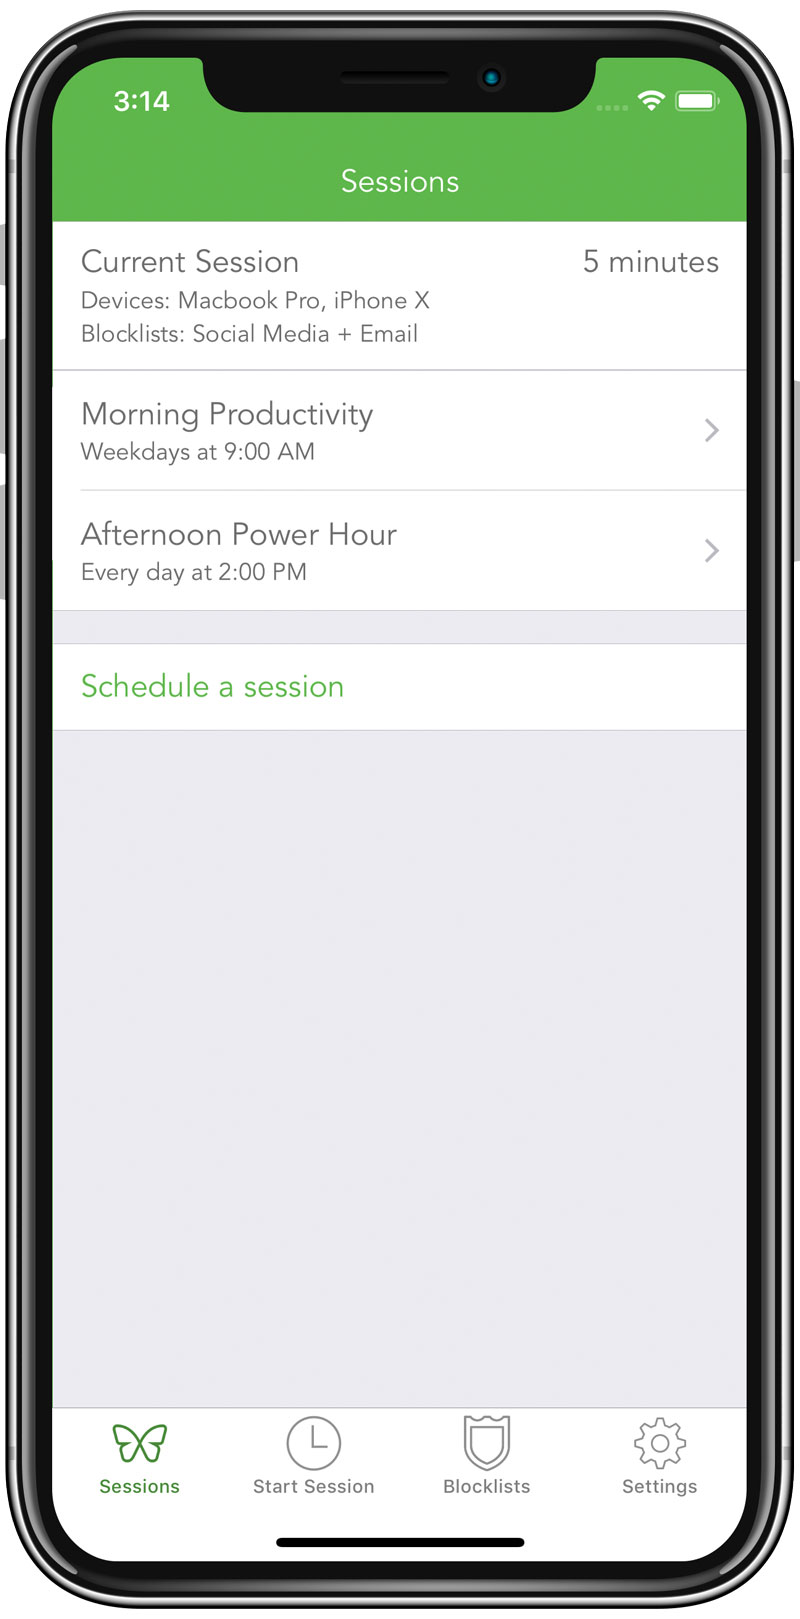 A screenshot showing a list of recurring sessions, with names like morning productivity (weekdays at 9:00 AM) and afternoon power hour (Every day at 2:00 PM).